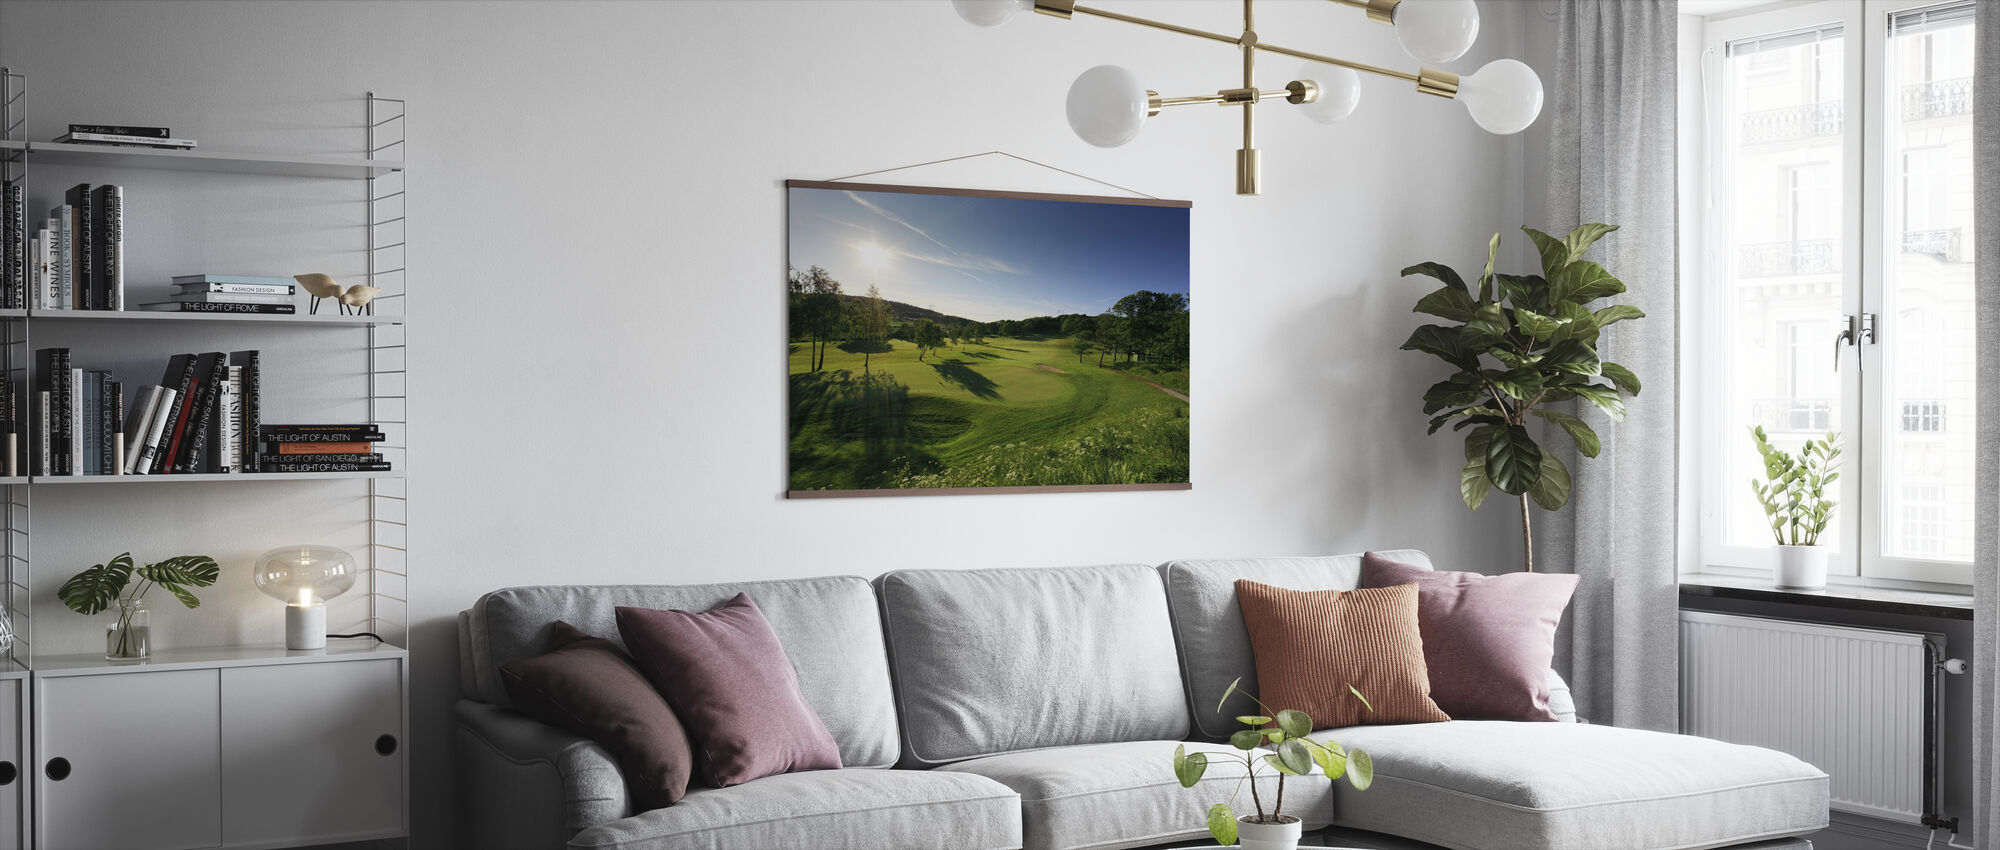 Golf Court in Gothenburg, Sweden - Poster - Living Room